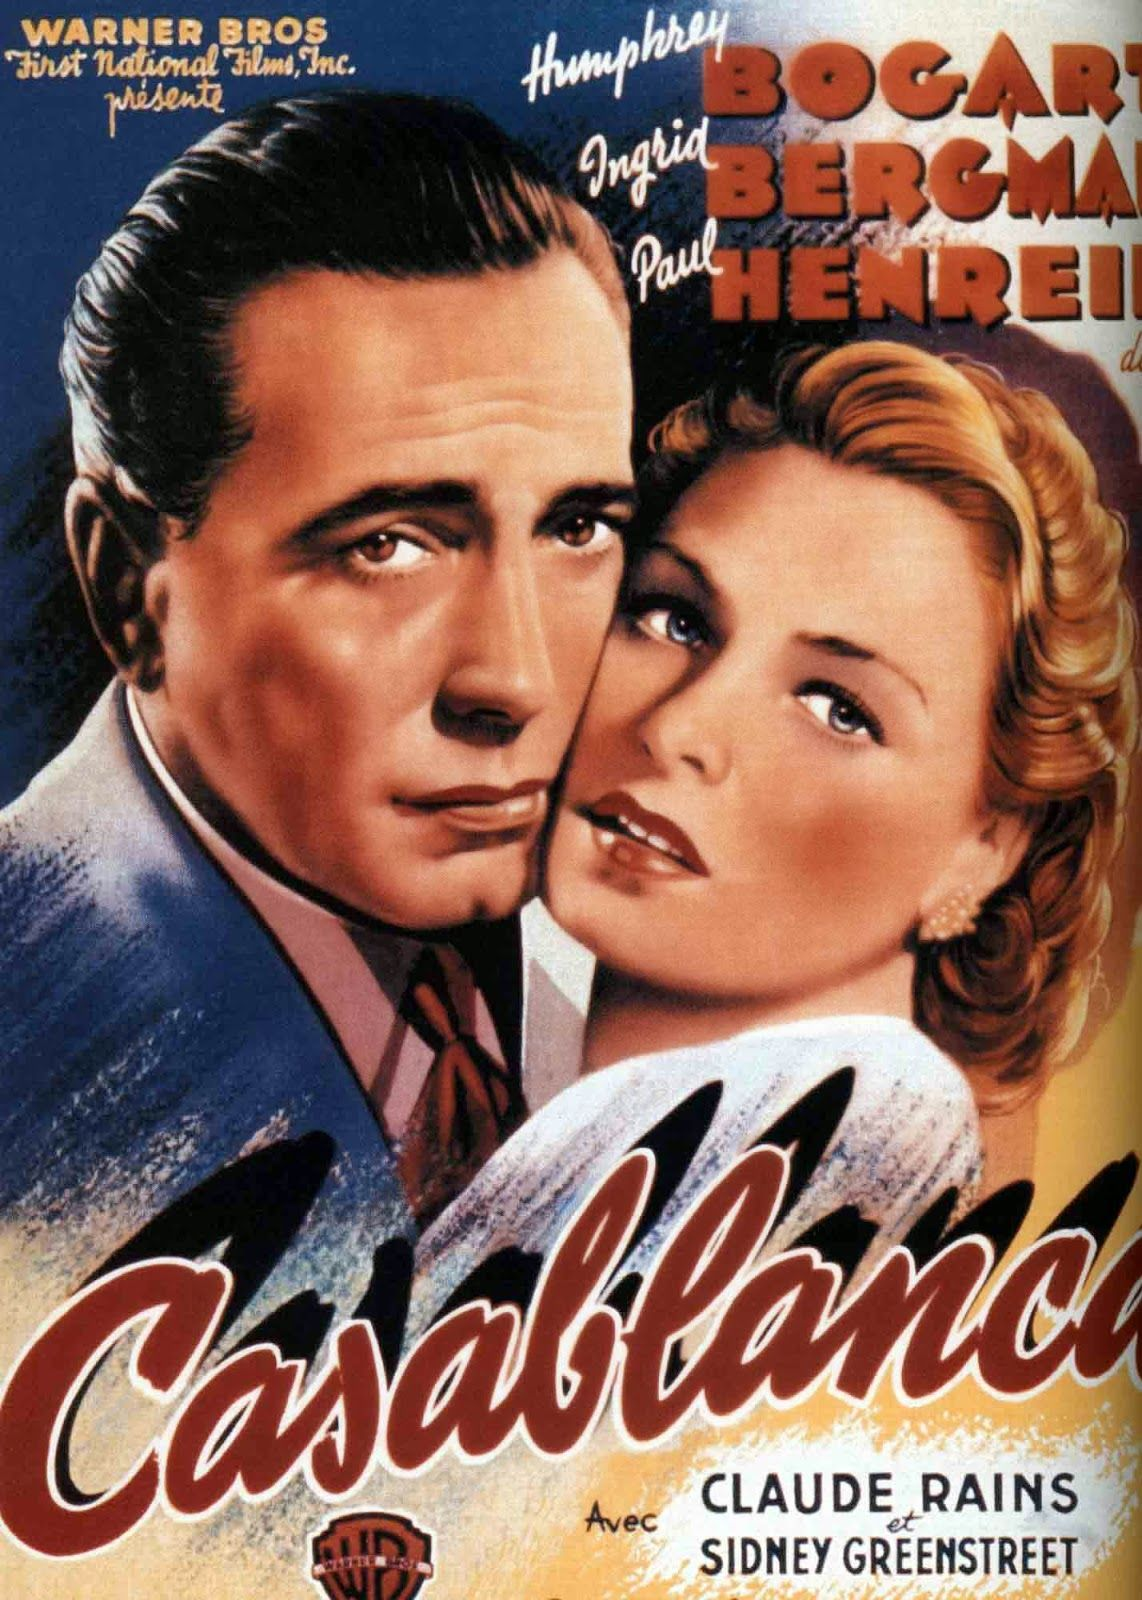 Art Artists Film Posters 1940s Movie Posters 1940s Part 1 Movie Posters Vintage Casablanca Movie Classic Movie Posters